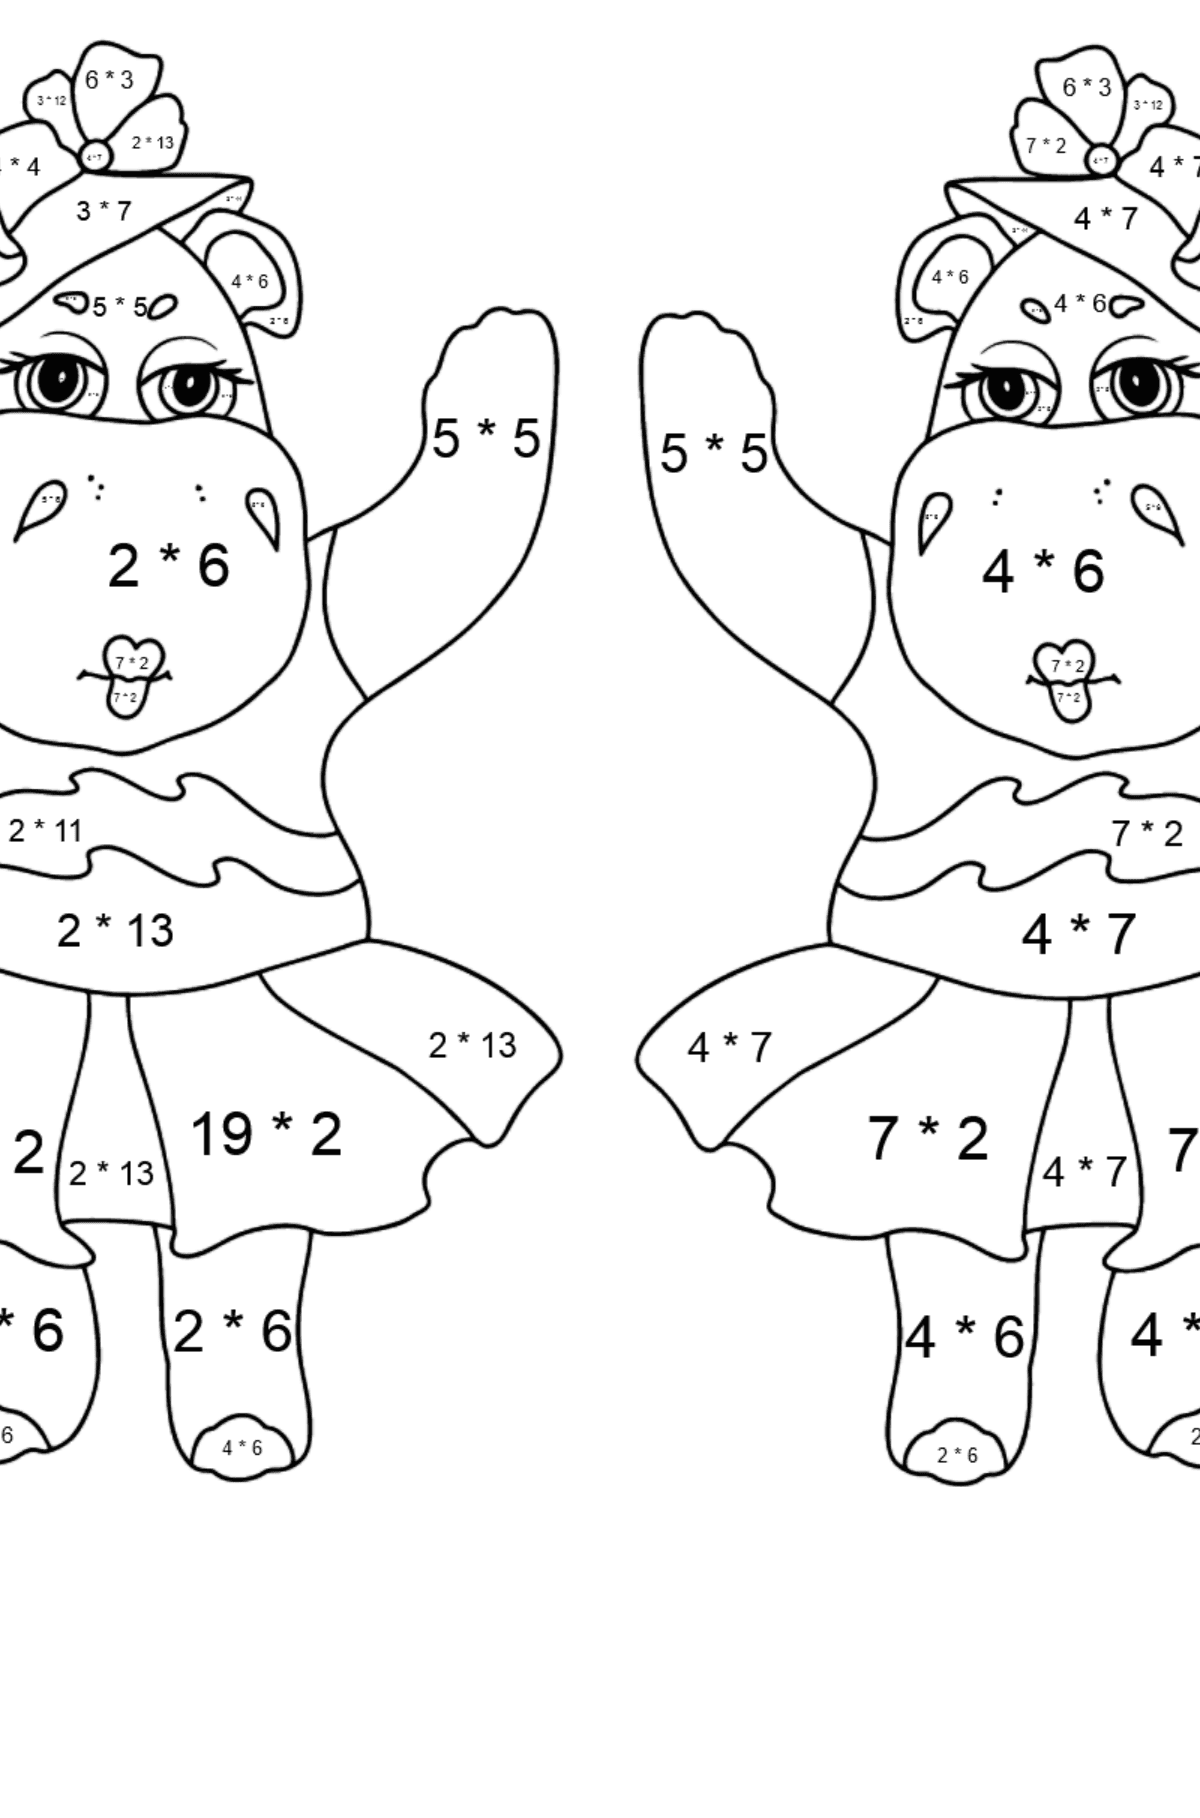 Coloring Page - Hippos are Harvesting the Crops - Math Coloring - Multiplication for Kids